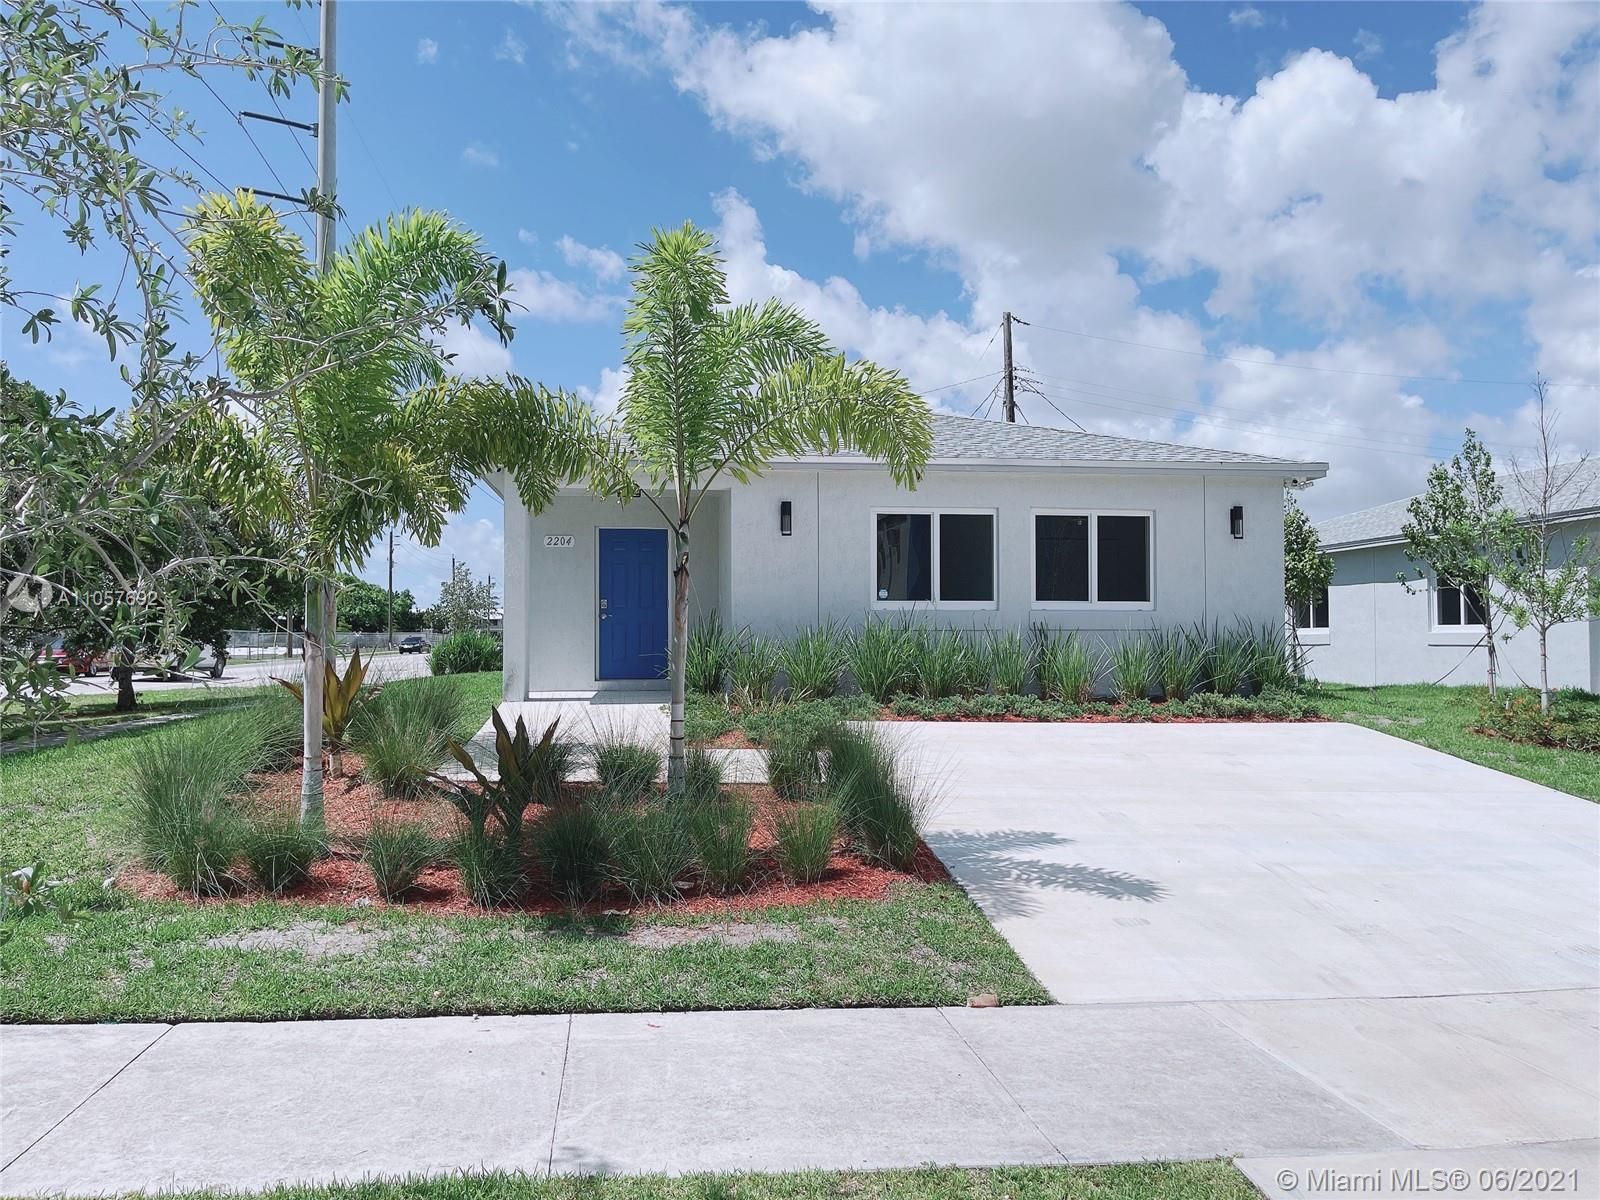 Welcome to a brand new corner lot  home. The house has an open floor plan with a clean look, modern